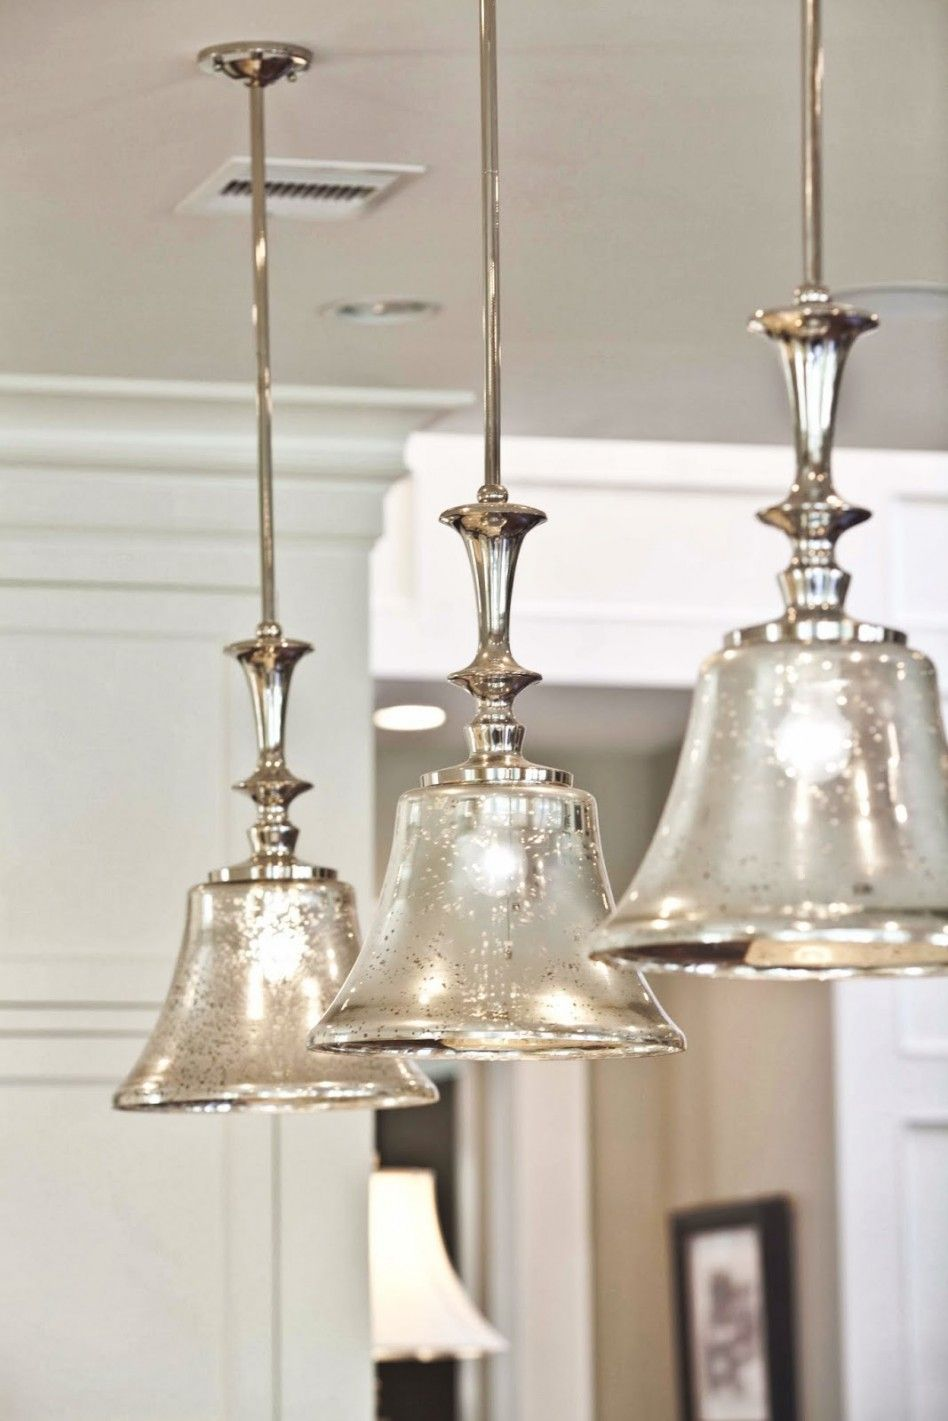 Kitchen Lights Hanging Farmhouse Unique Decorative Lighting Google Search Cool Log